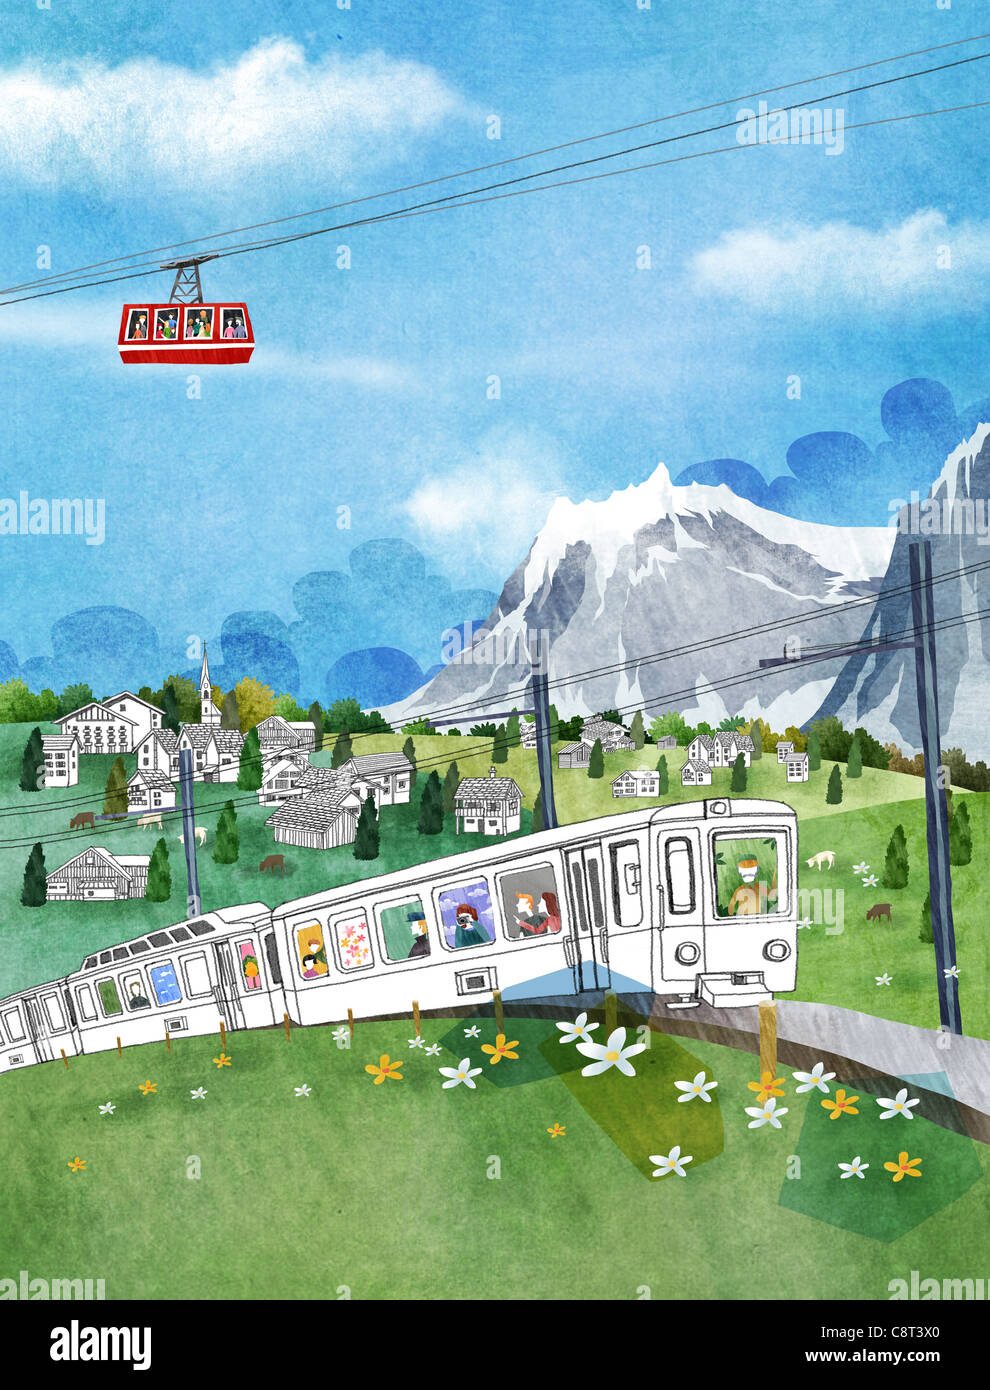 Cable Car And Toy Train On Green Landscape - Stock Image